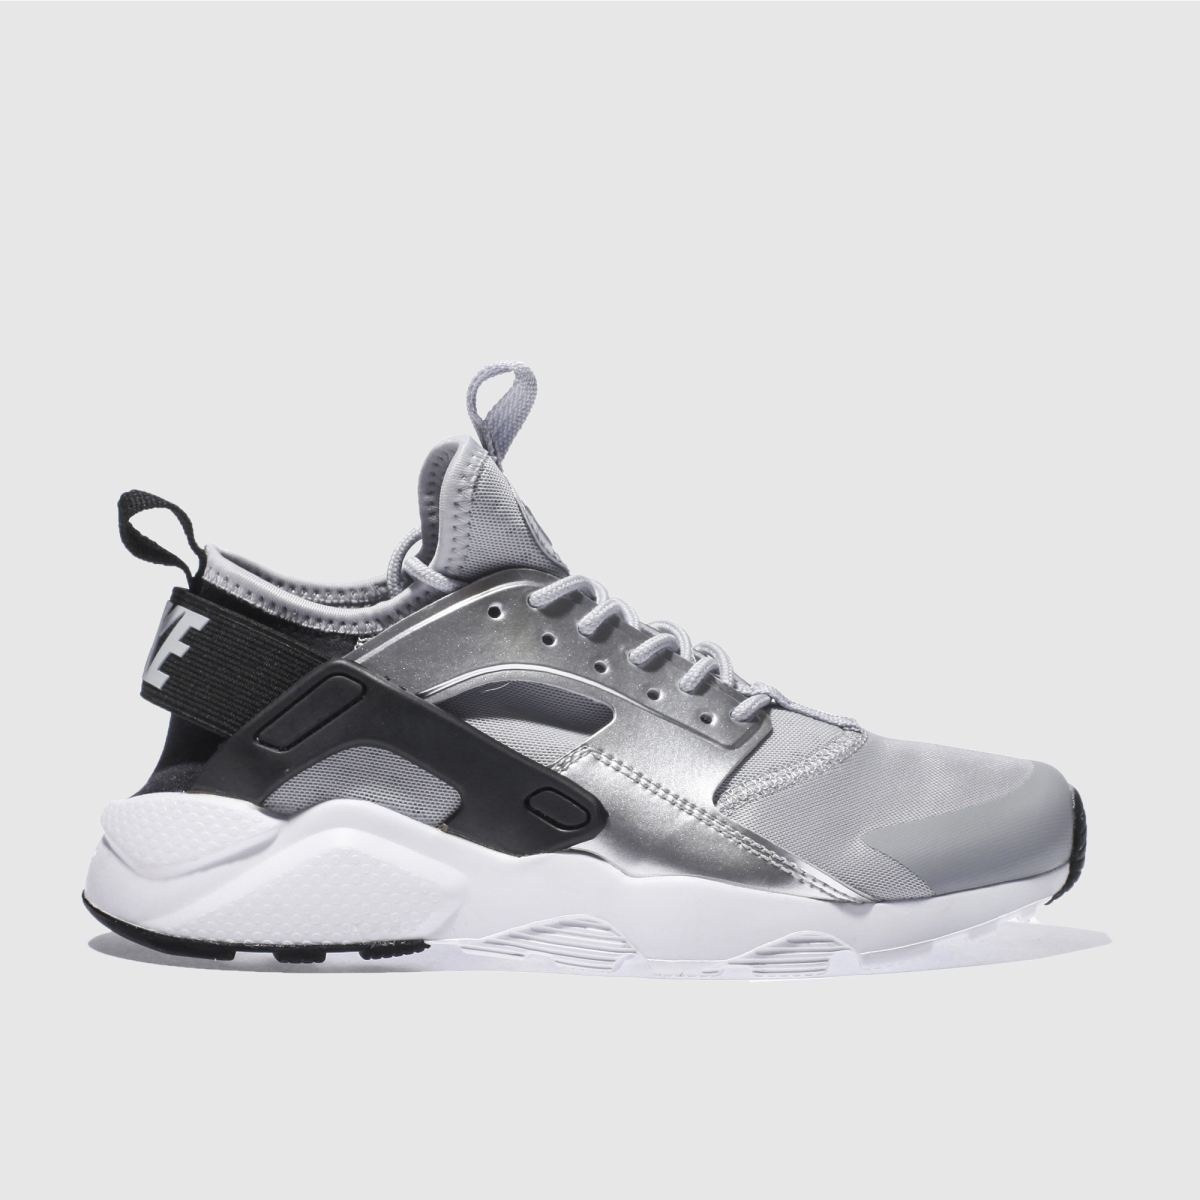 nike silver & black huarache run ultra Girls Youth Trainers